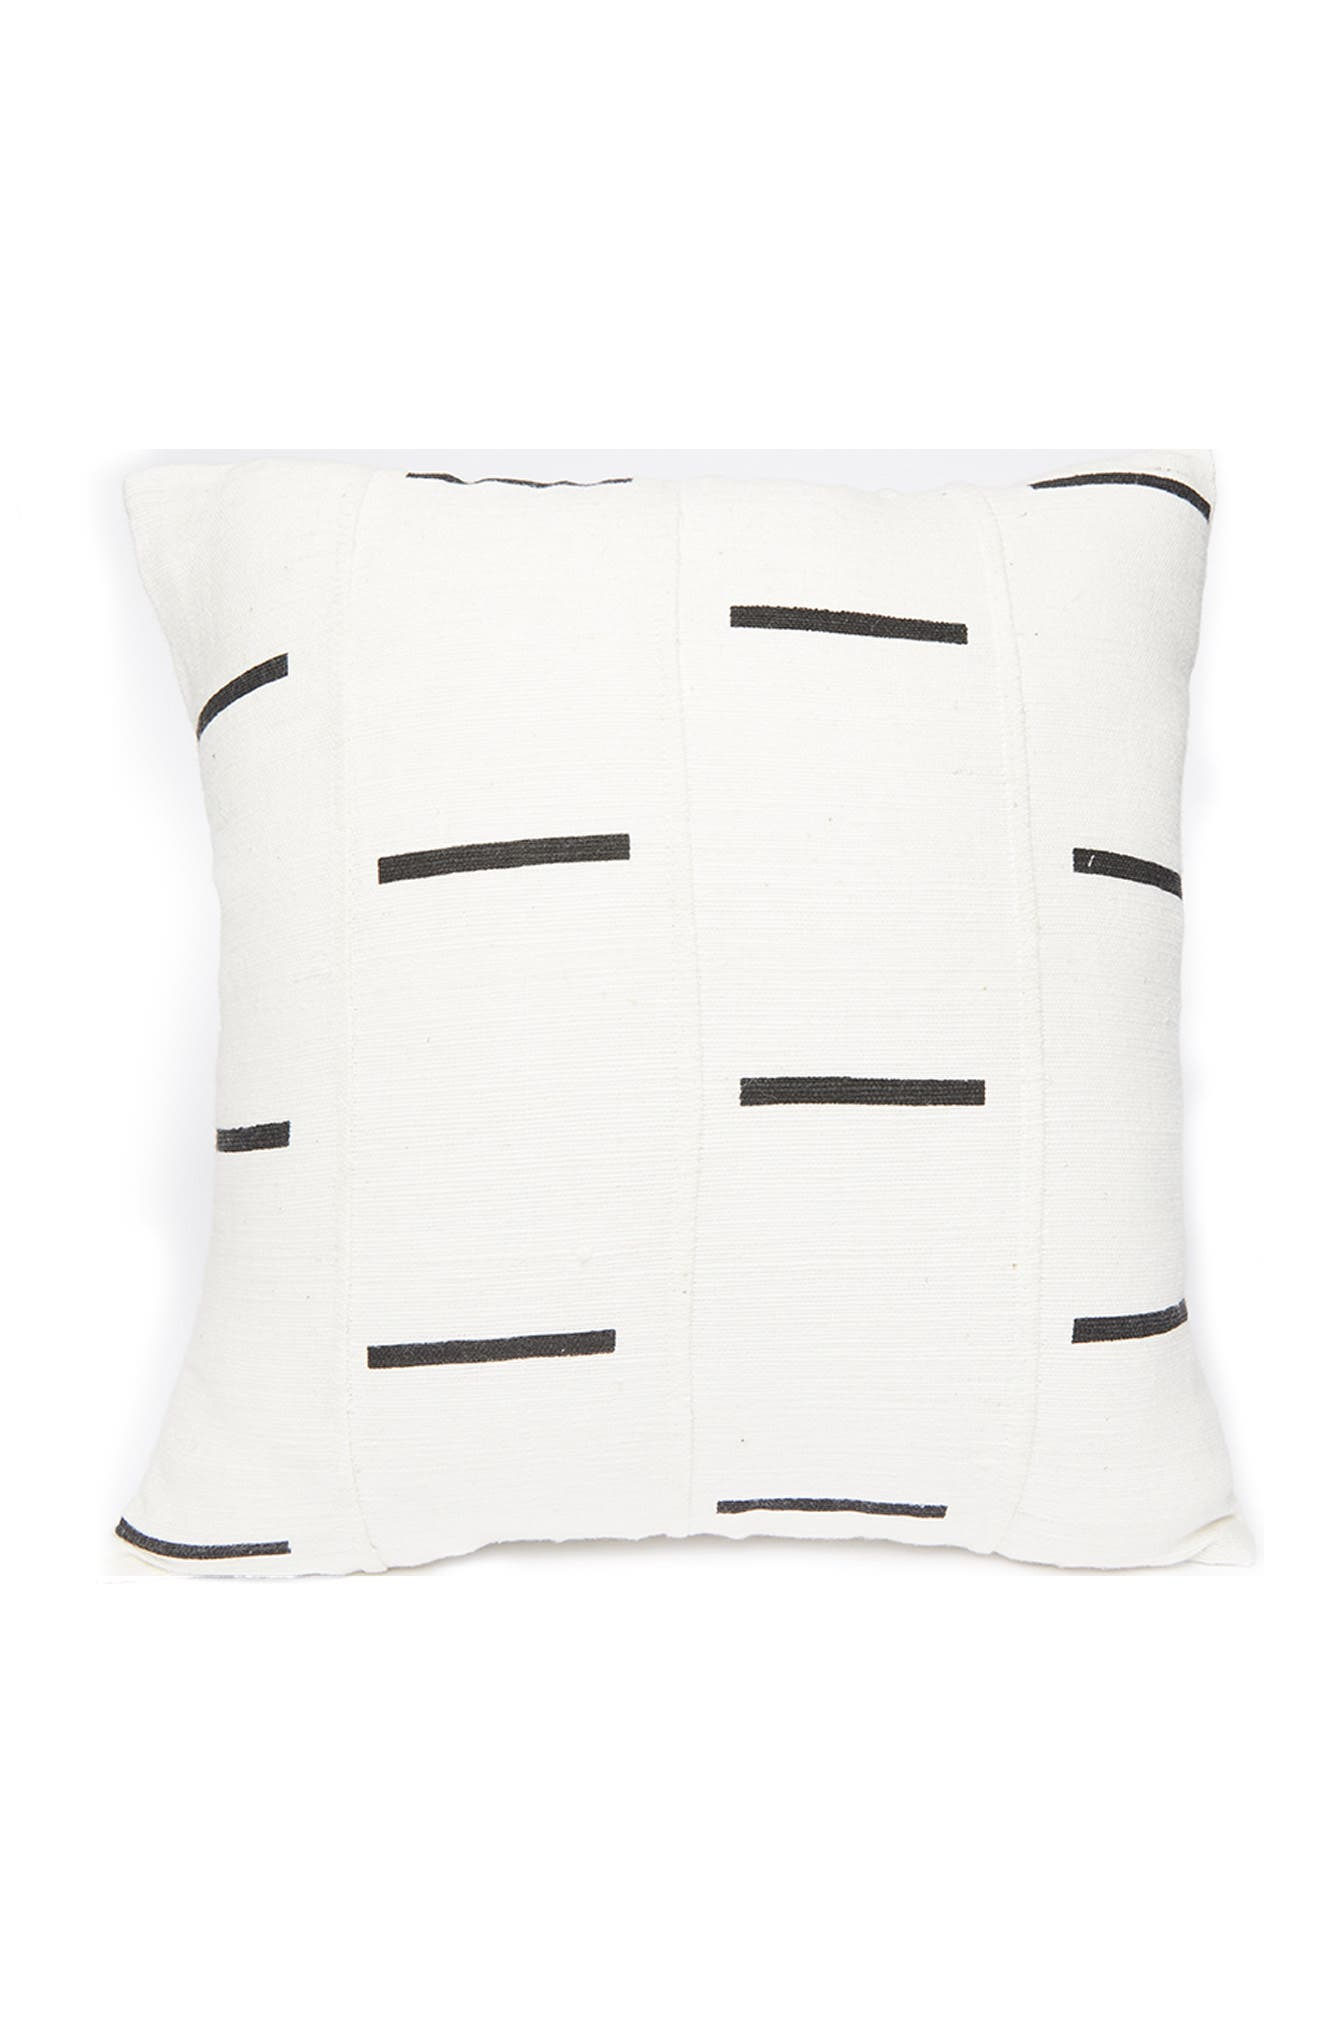 UNCOMMON JAMES BY KRISTIN CAVALLARI Read Between the Lines Pillow Cover, Main, color, WHITE